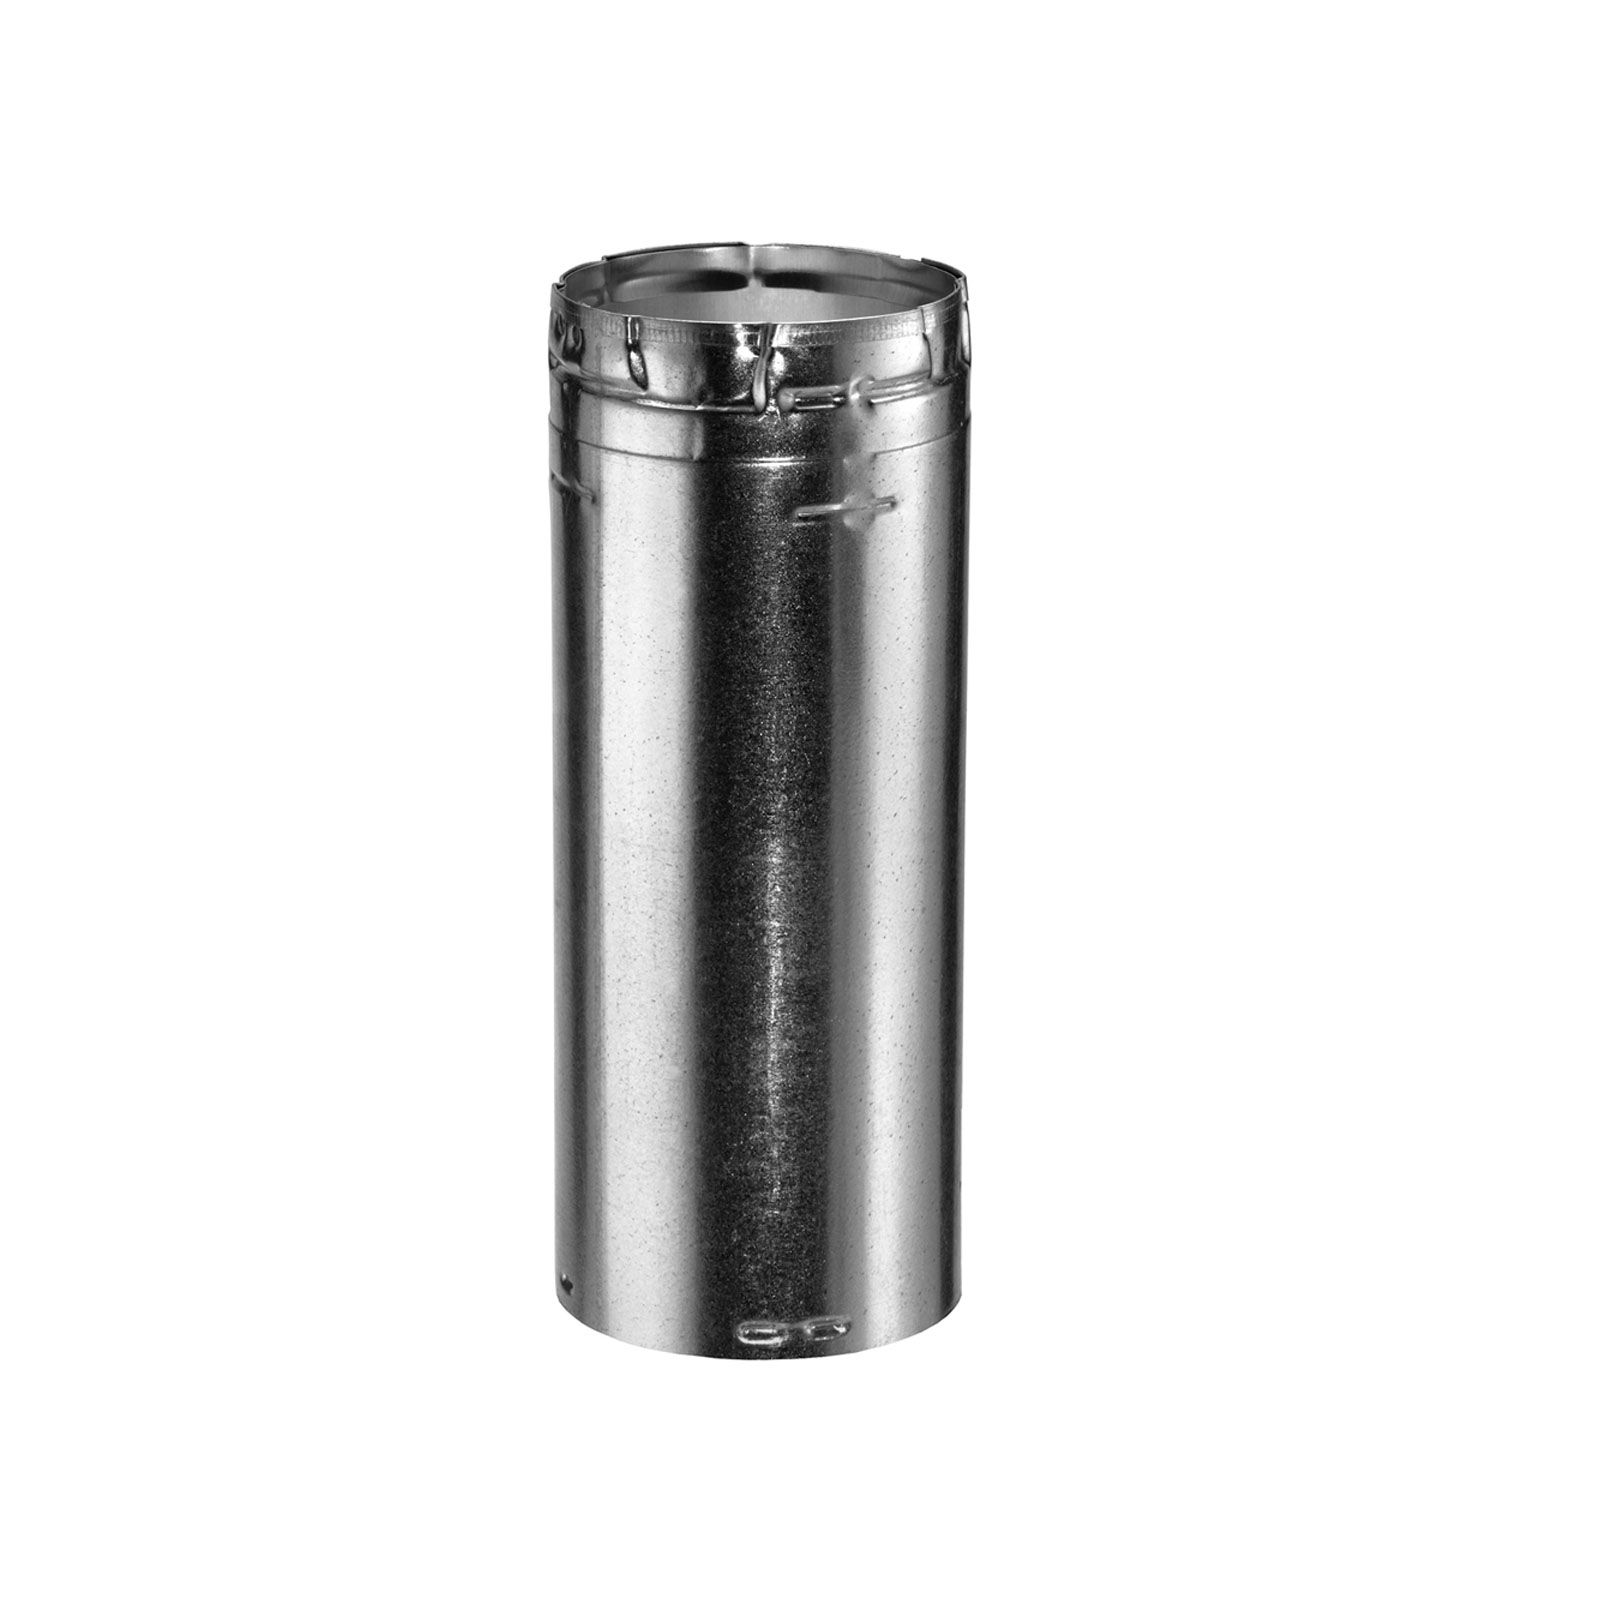 "DuraVent 4GV06 - Aluminum 6"" Length Round Rigid Pipe with 4"" Inner Diameter"